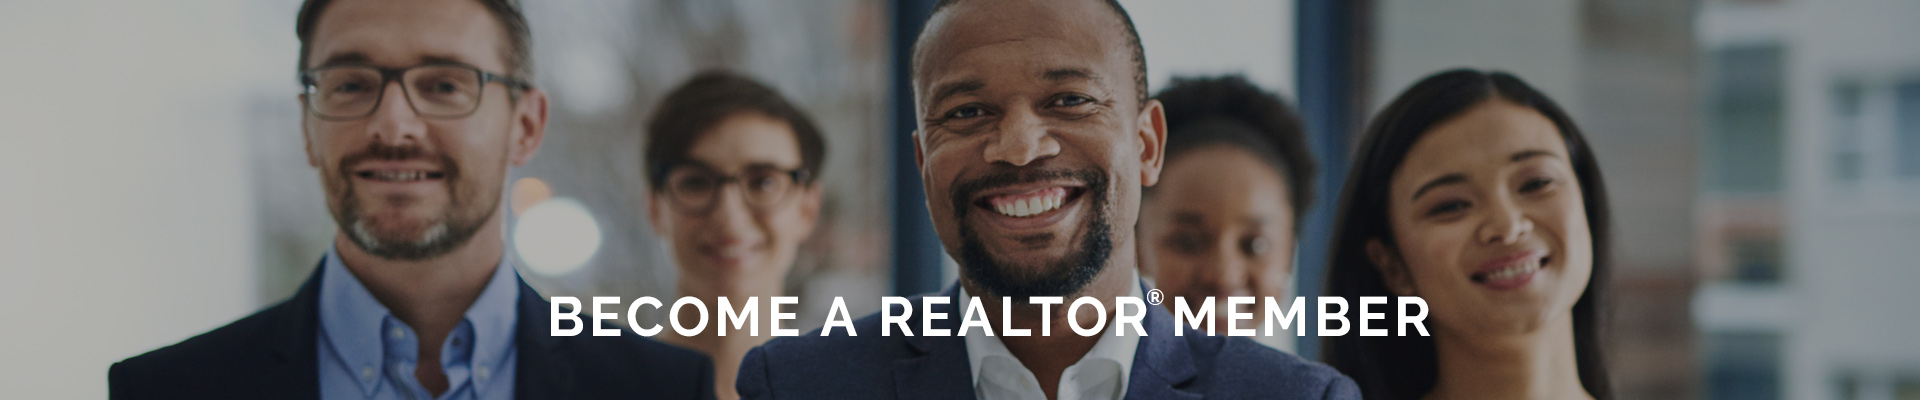 become_a_realtor_member_header